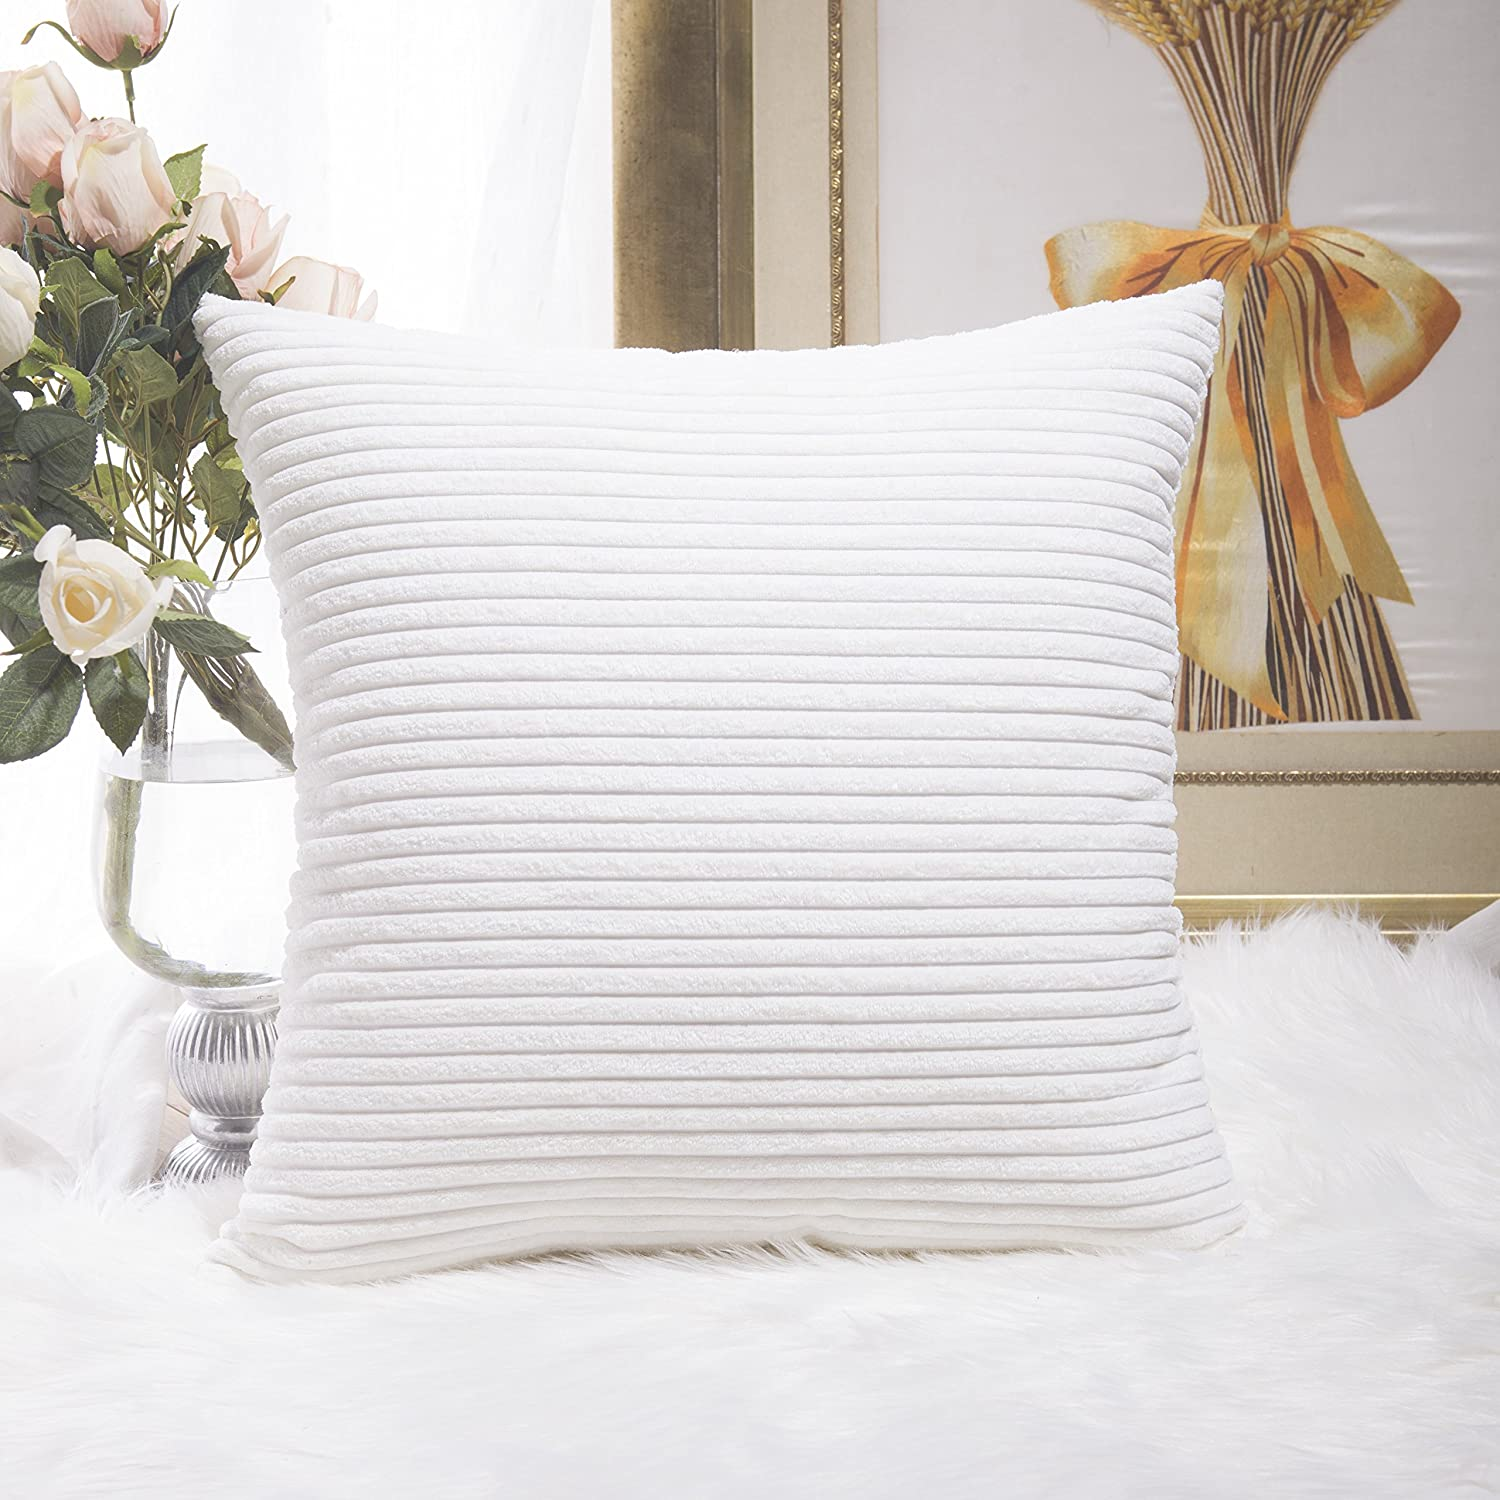 Home Brilliant Decorative Pillow Cover Fall Accent Solid Striped Corduroy Plush Velvet Cushion Cover Couch, Pure White, 18x18 inch (45cm)